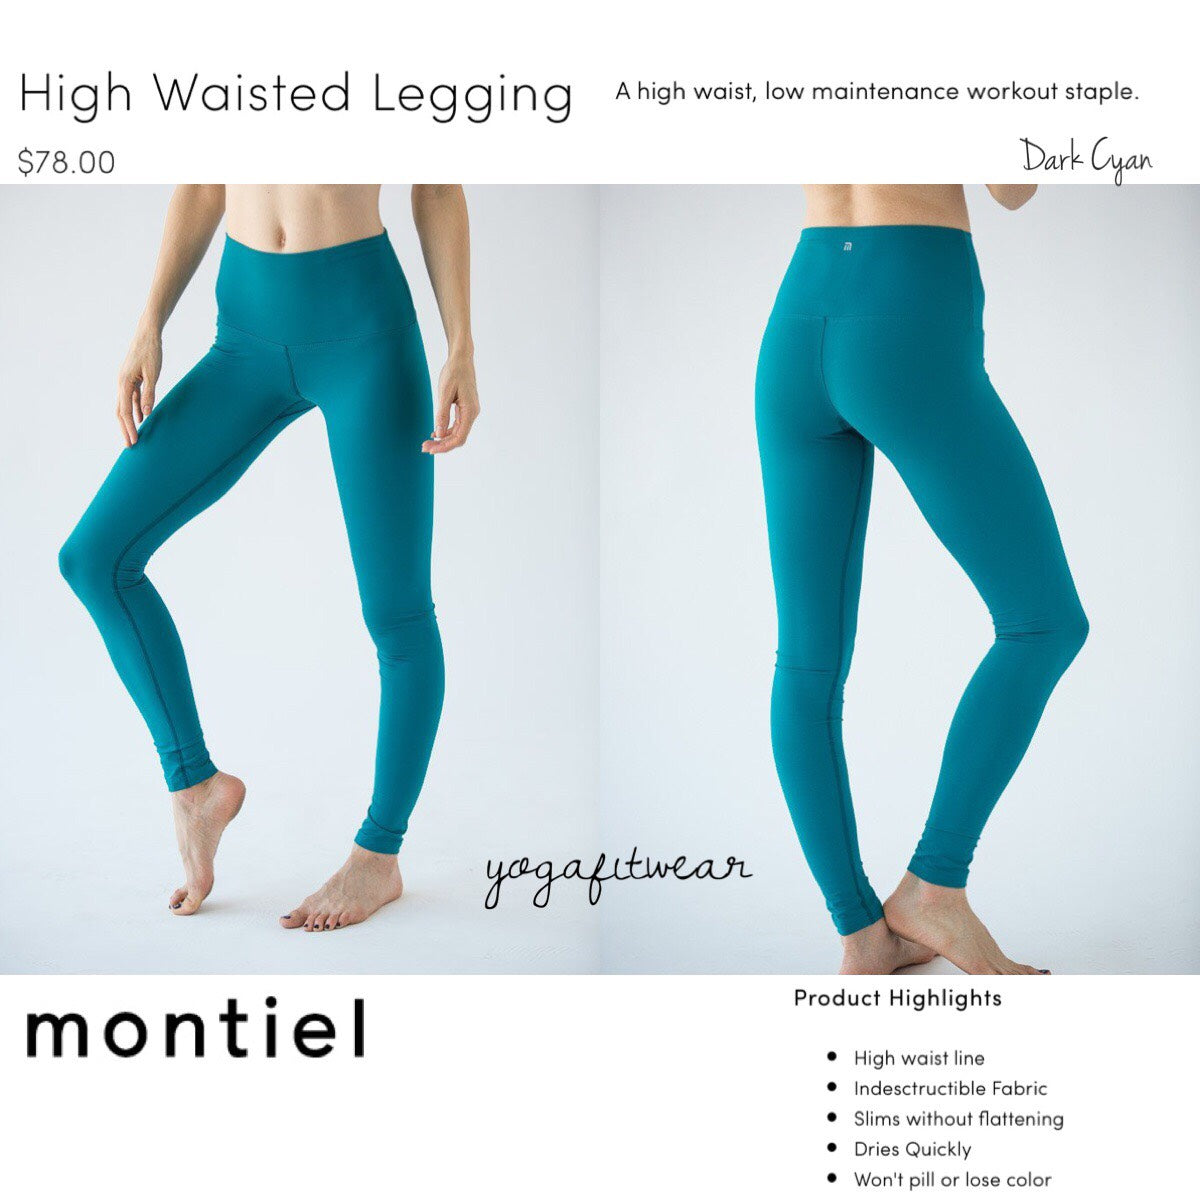 Montiel Legging - High Waisted Legging (Dark Cyan) (MT00089)